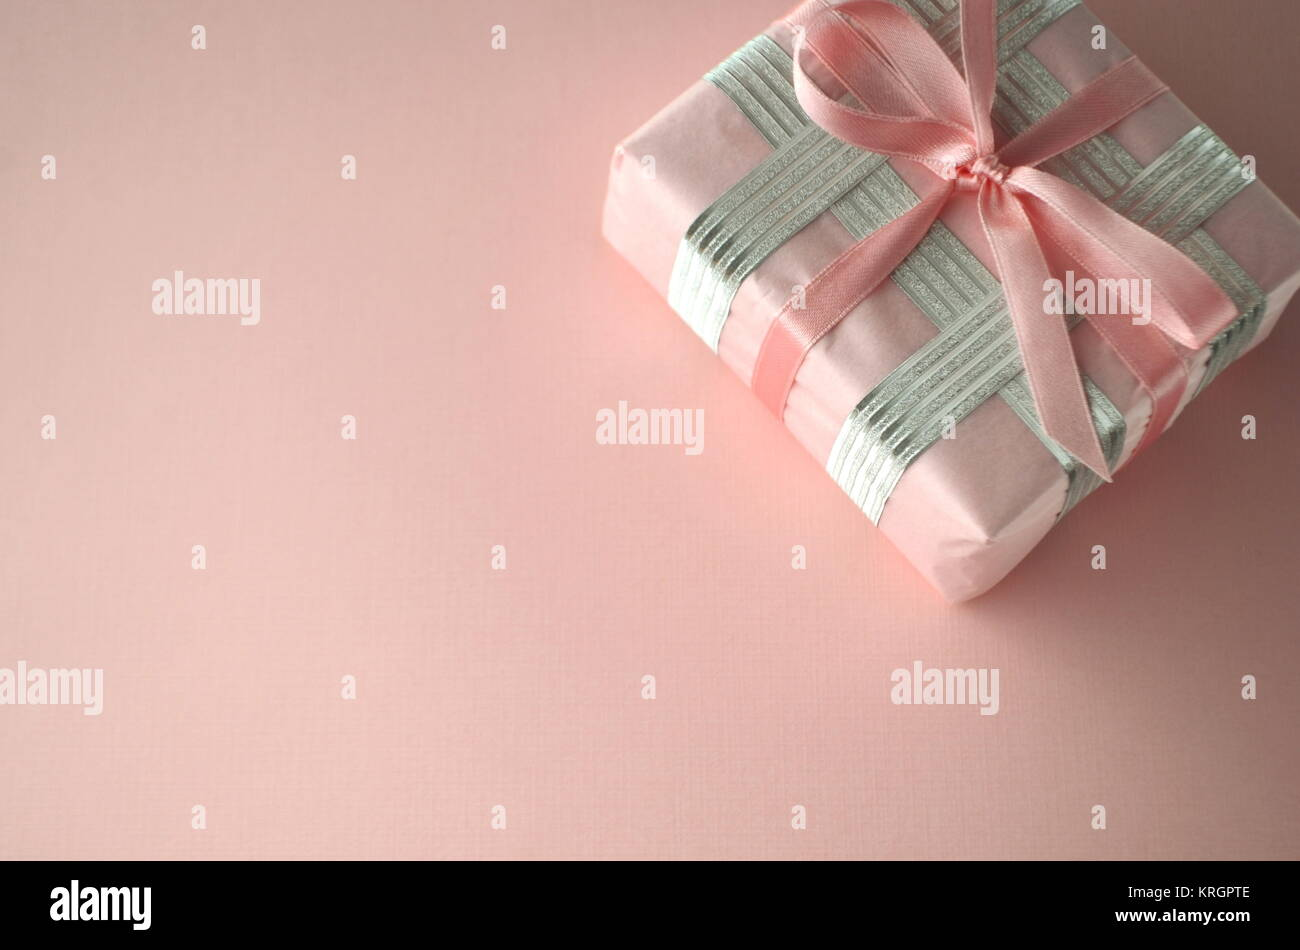 Anniversaries Stock Photos & Anniversaries Stock Images - Alamy